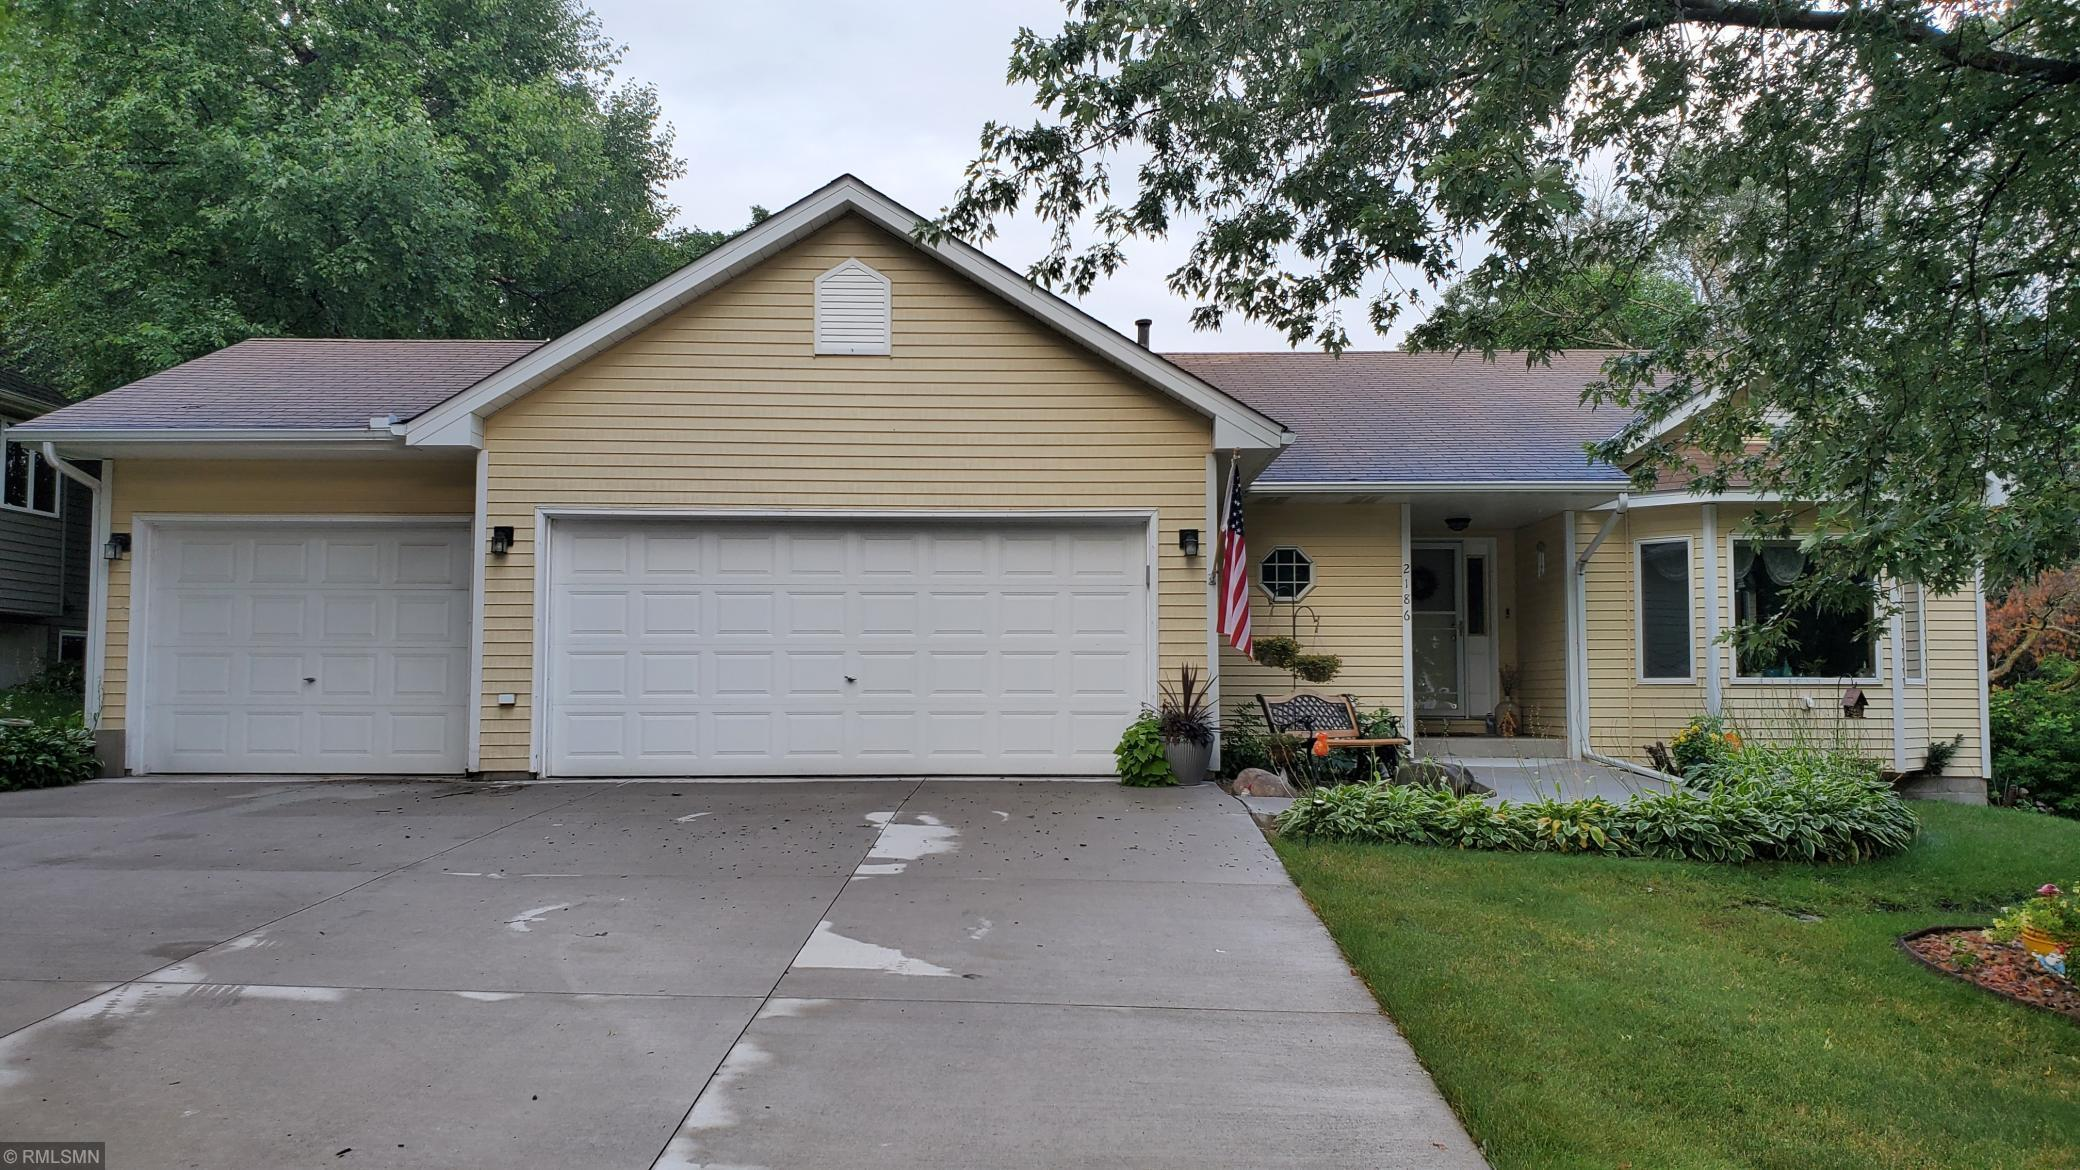 2186 Ariel Street N Property Photo - North Saint Paul, MN real estate listing